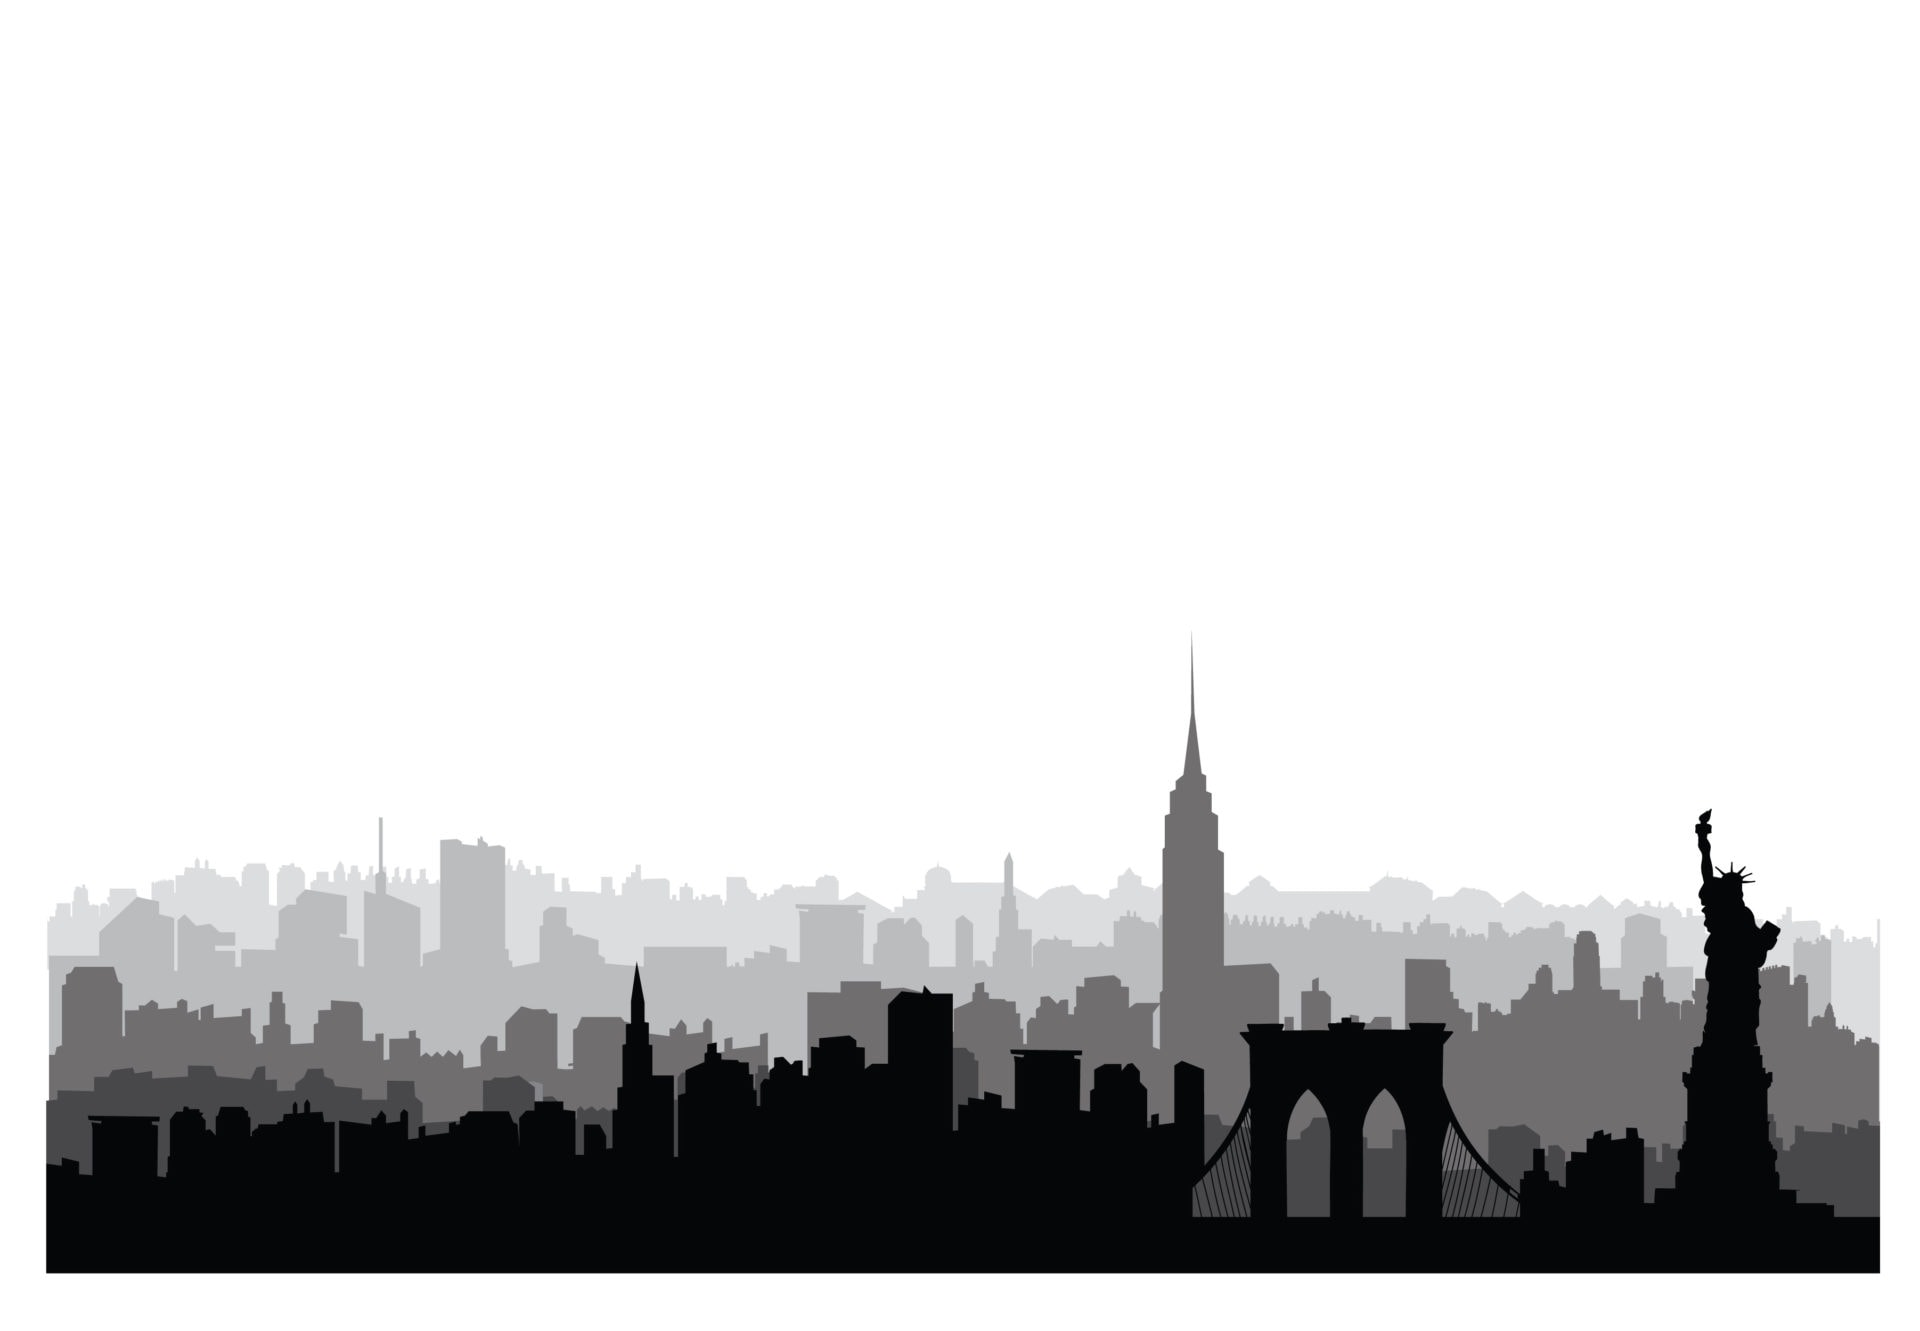 New York City Buildings Silhouette American Urban Landscape New York Cityscape With Landmarks Travel Usa Skyline Background